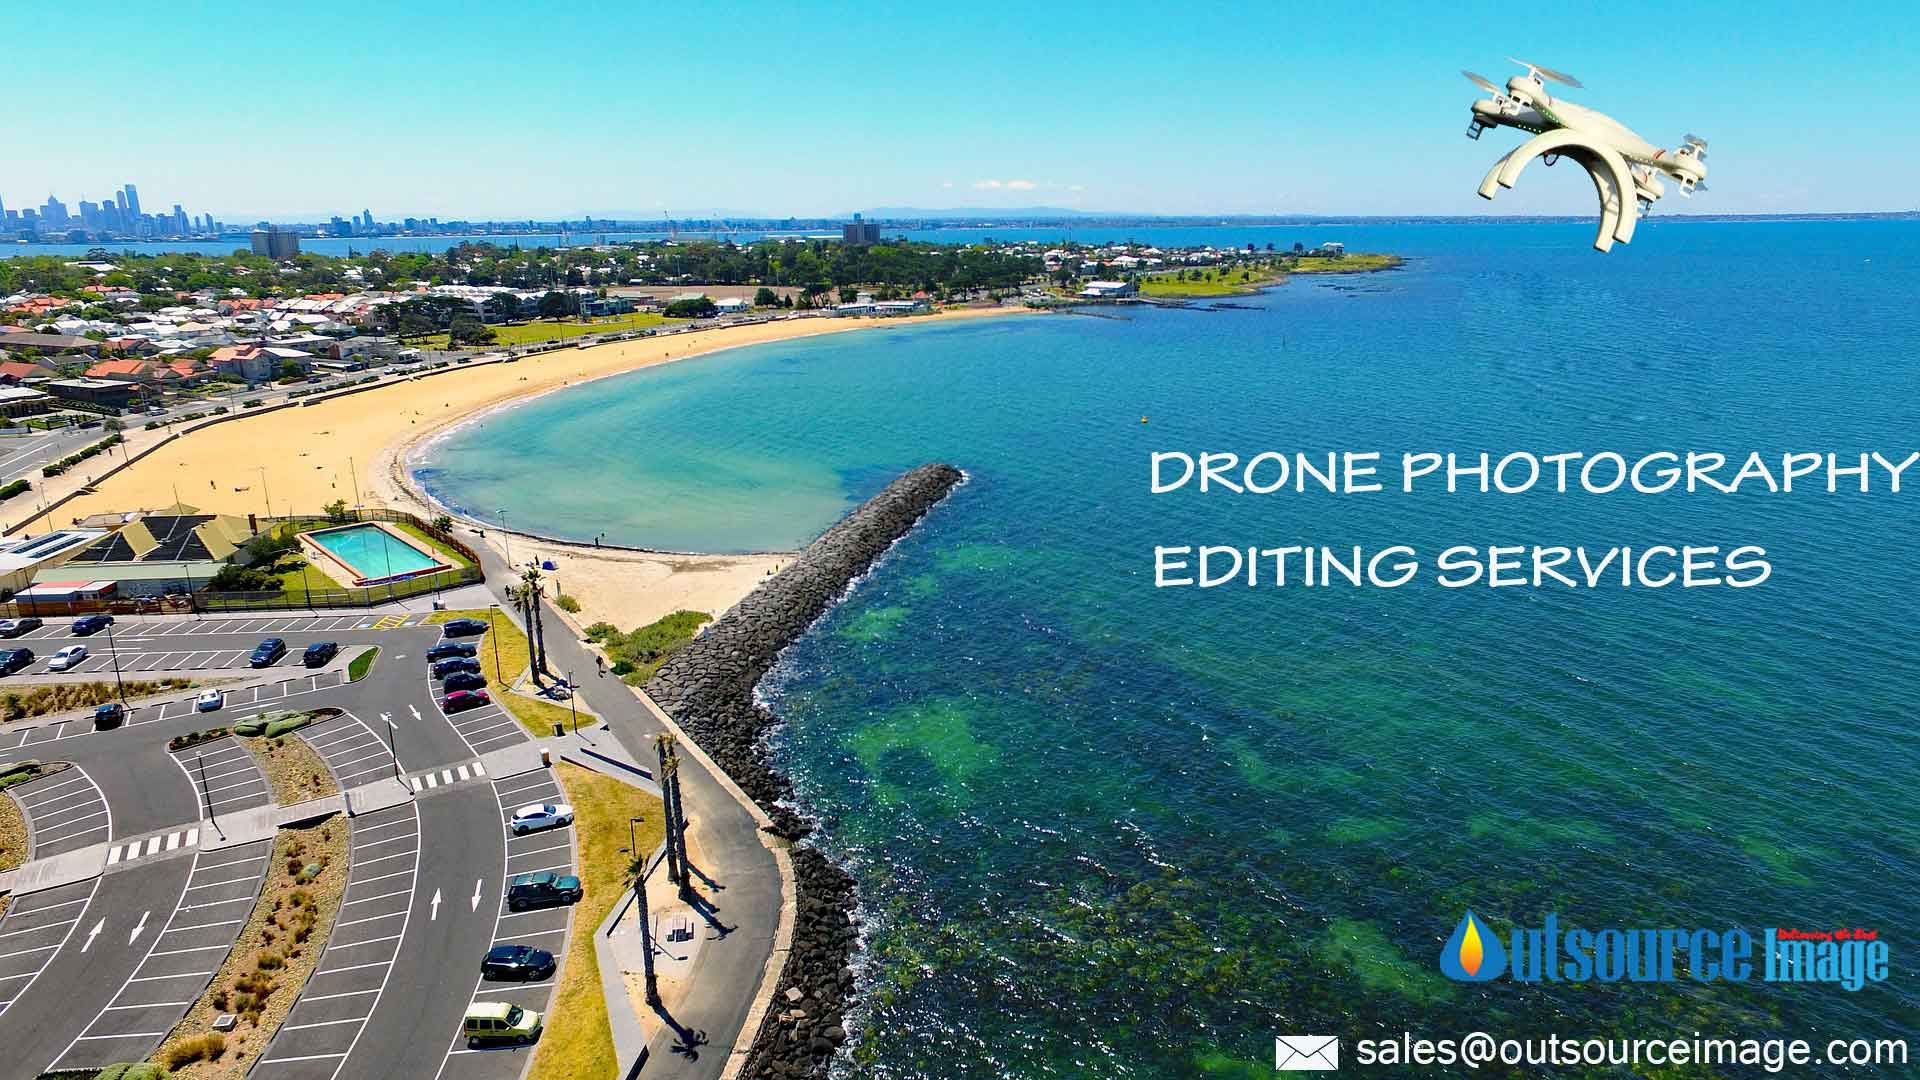 Drone Image Editing Services | Drone Photography Editing for Aerial Photographers